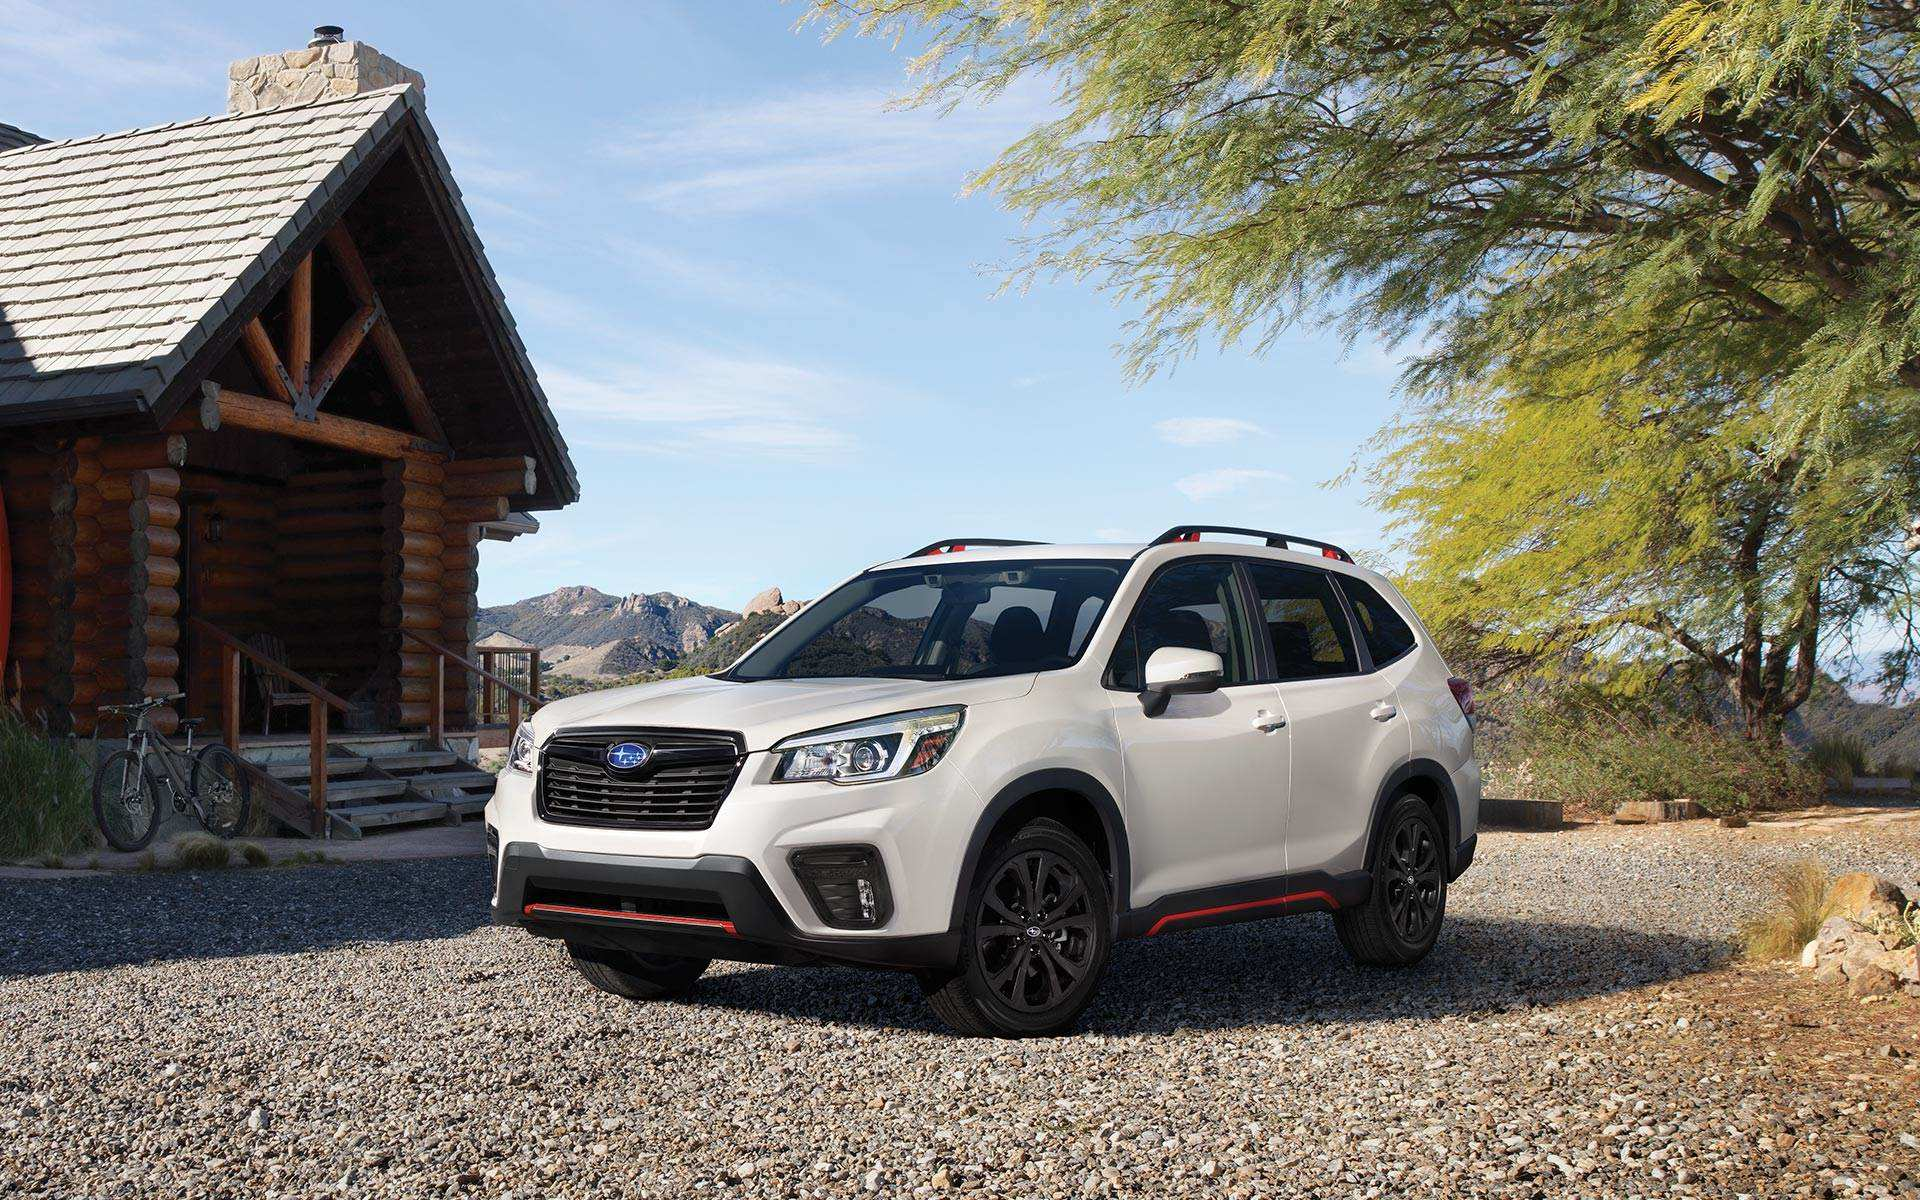 53 All New The 2019 Subaru Forester Vs Jeep Cherokee Review Exterior with The 2019 Subaru Forester Vs Jeep Cherokee Review